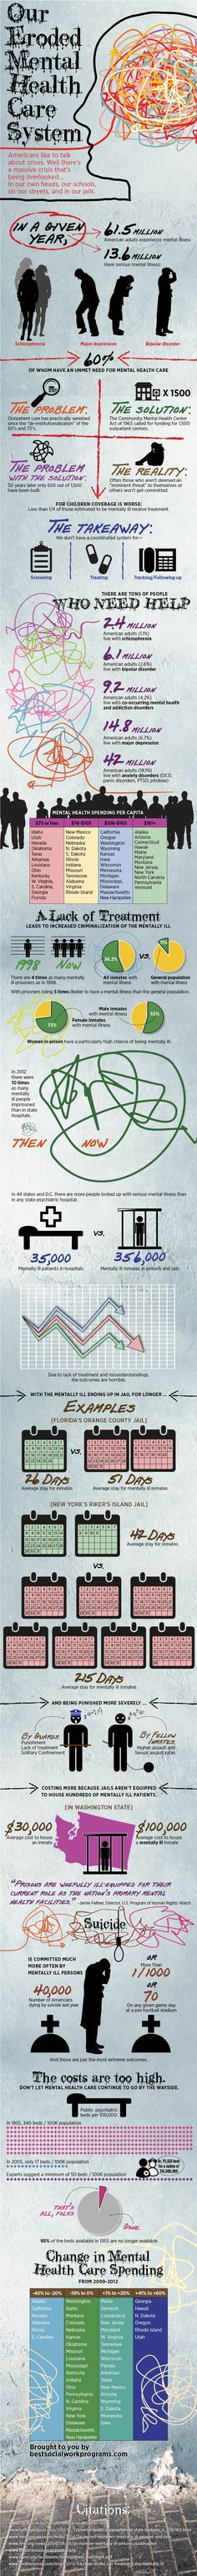 Our Eroded Mental Healthcare System